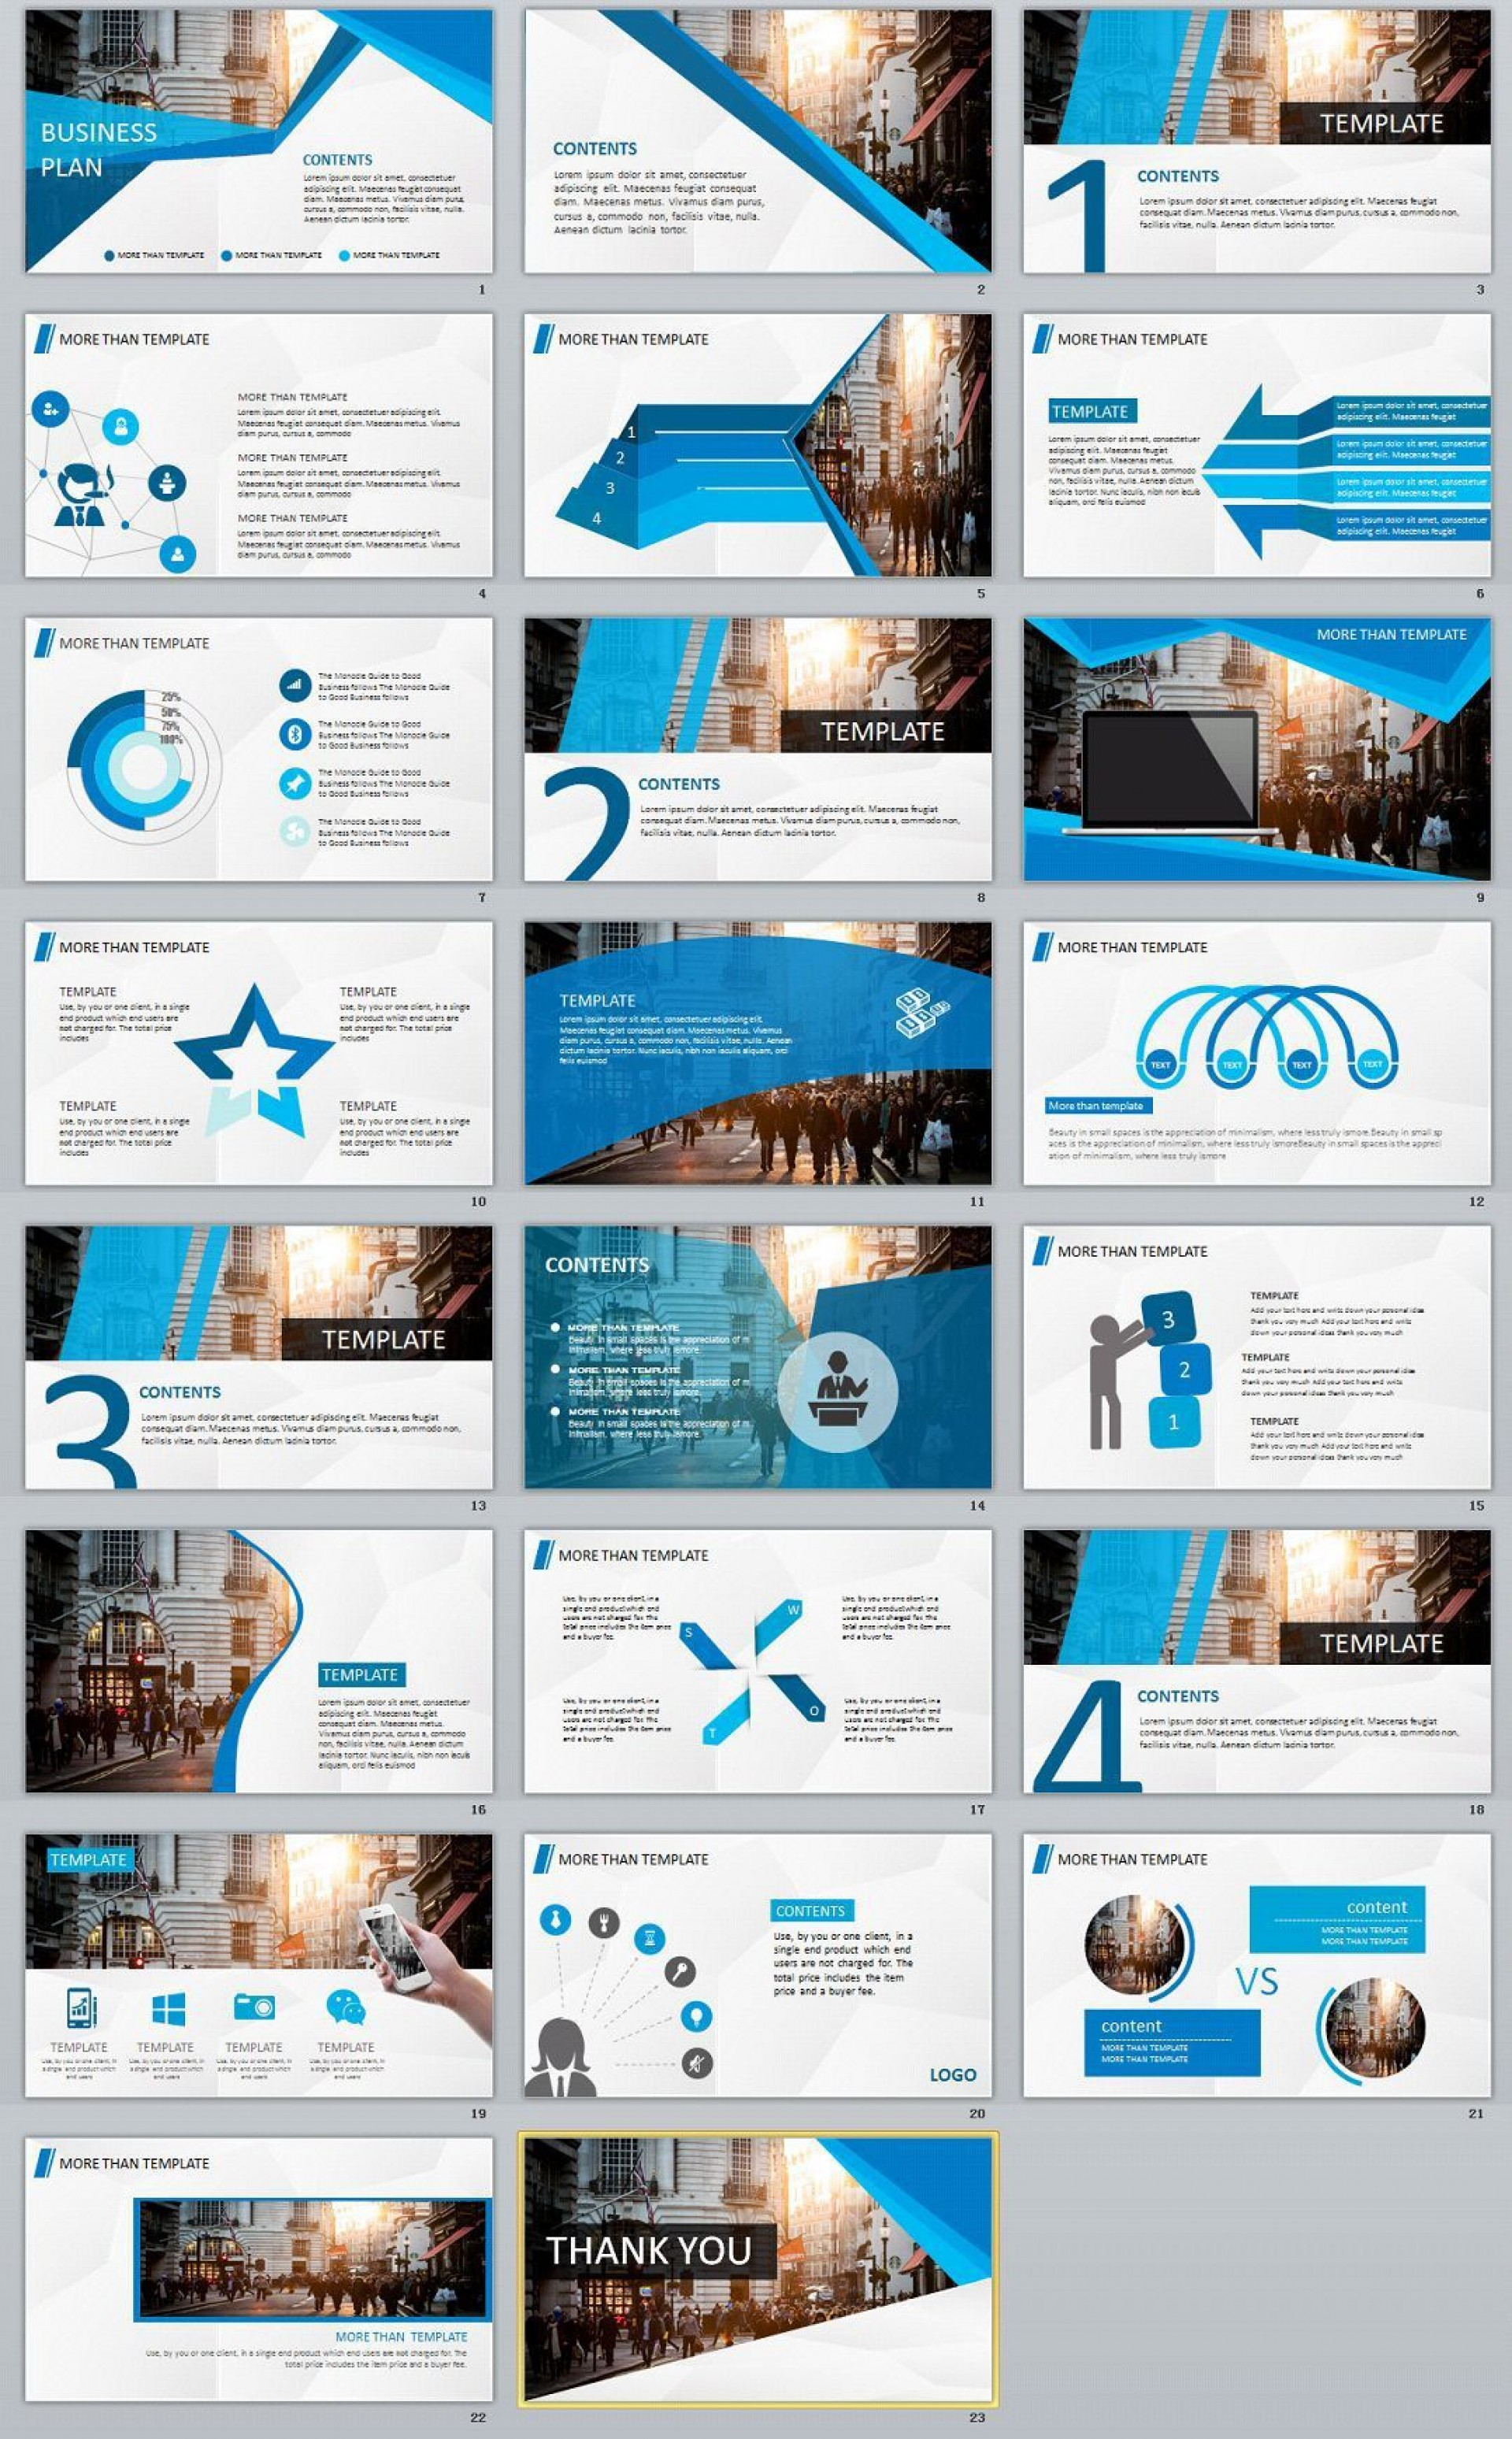 005 Stunning Free Busines Plan Powerpoint Template Download High Definition  Modern Ultimate1920